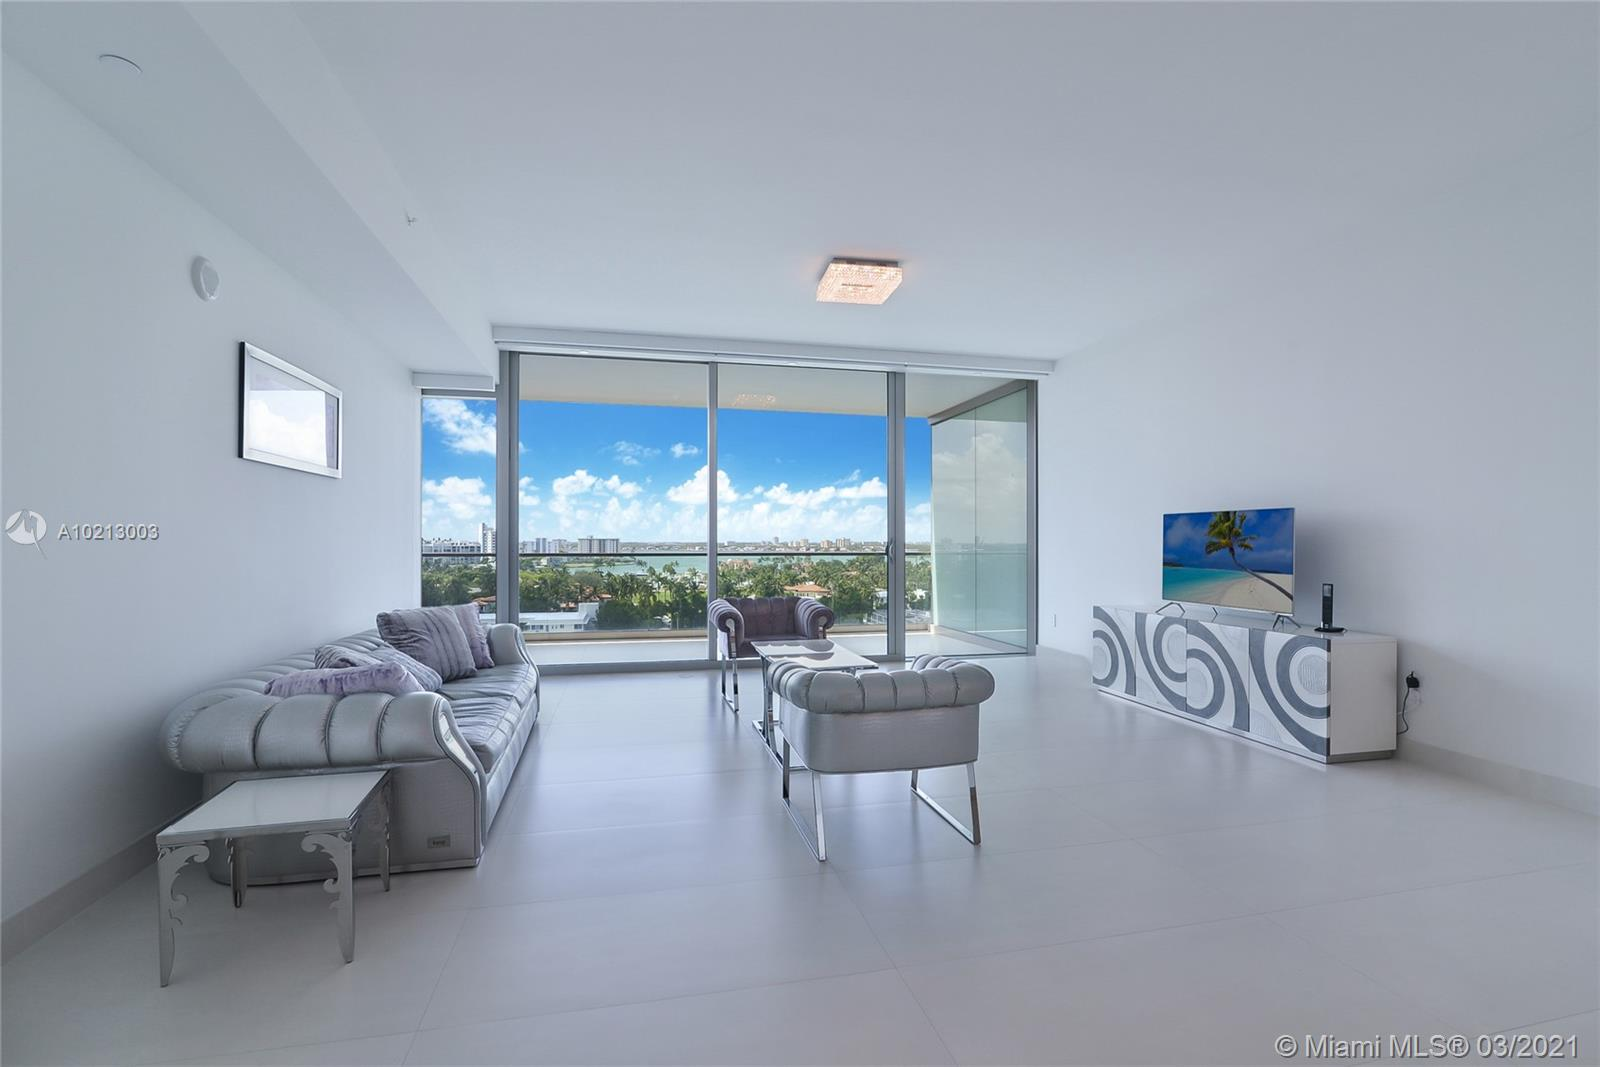 10201  COLLINS AVE #904S For Sale A10213003, FL